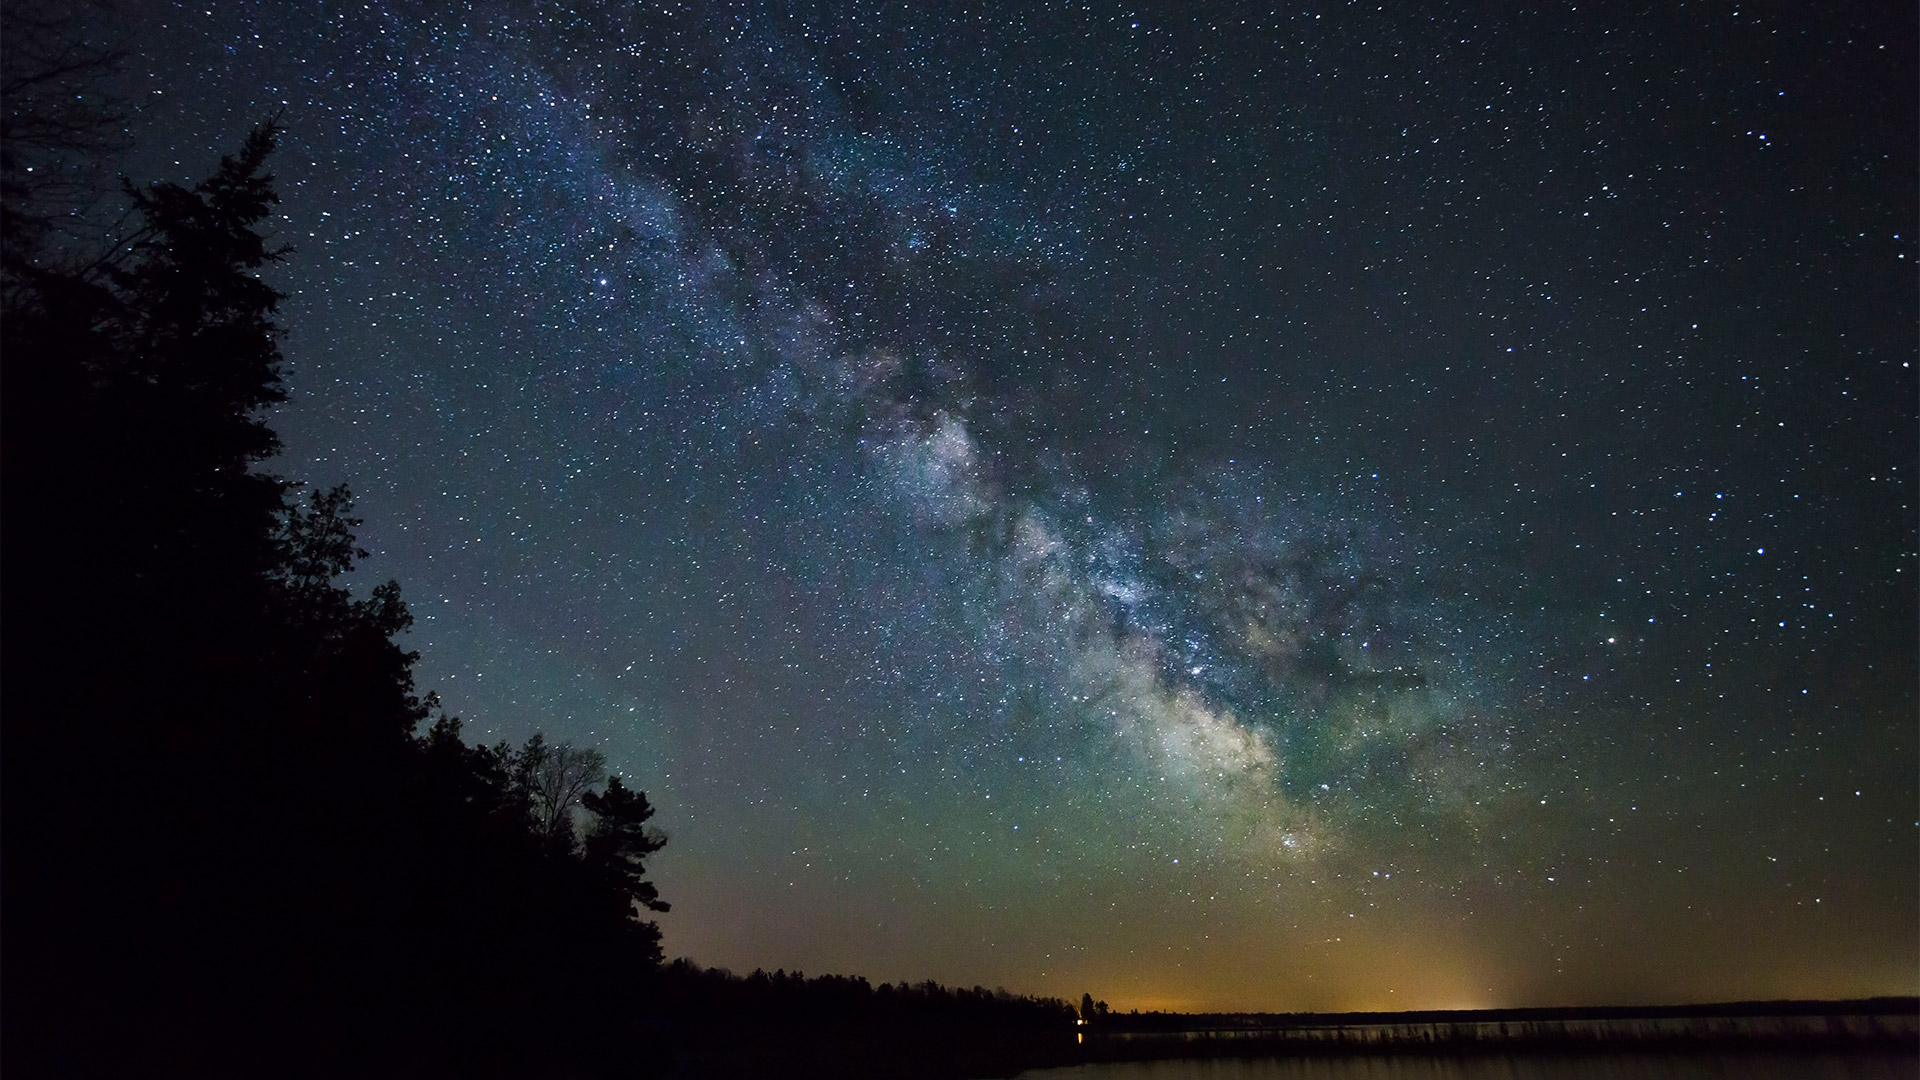 Headlands Dark Sky Park in Emmet County is one of Indian Trails top five must-see (and explore!) ideas for Michigan field trips.